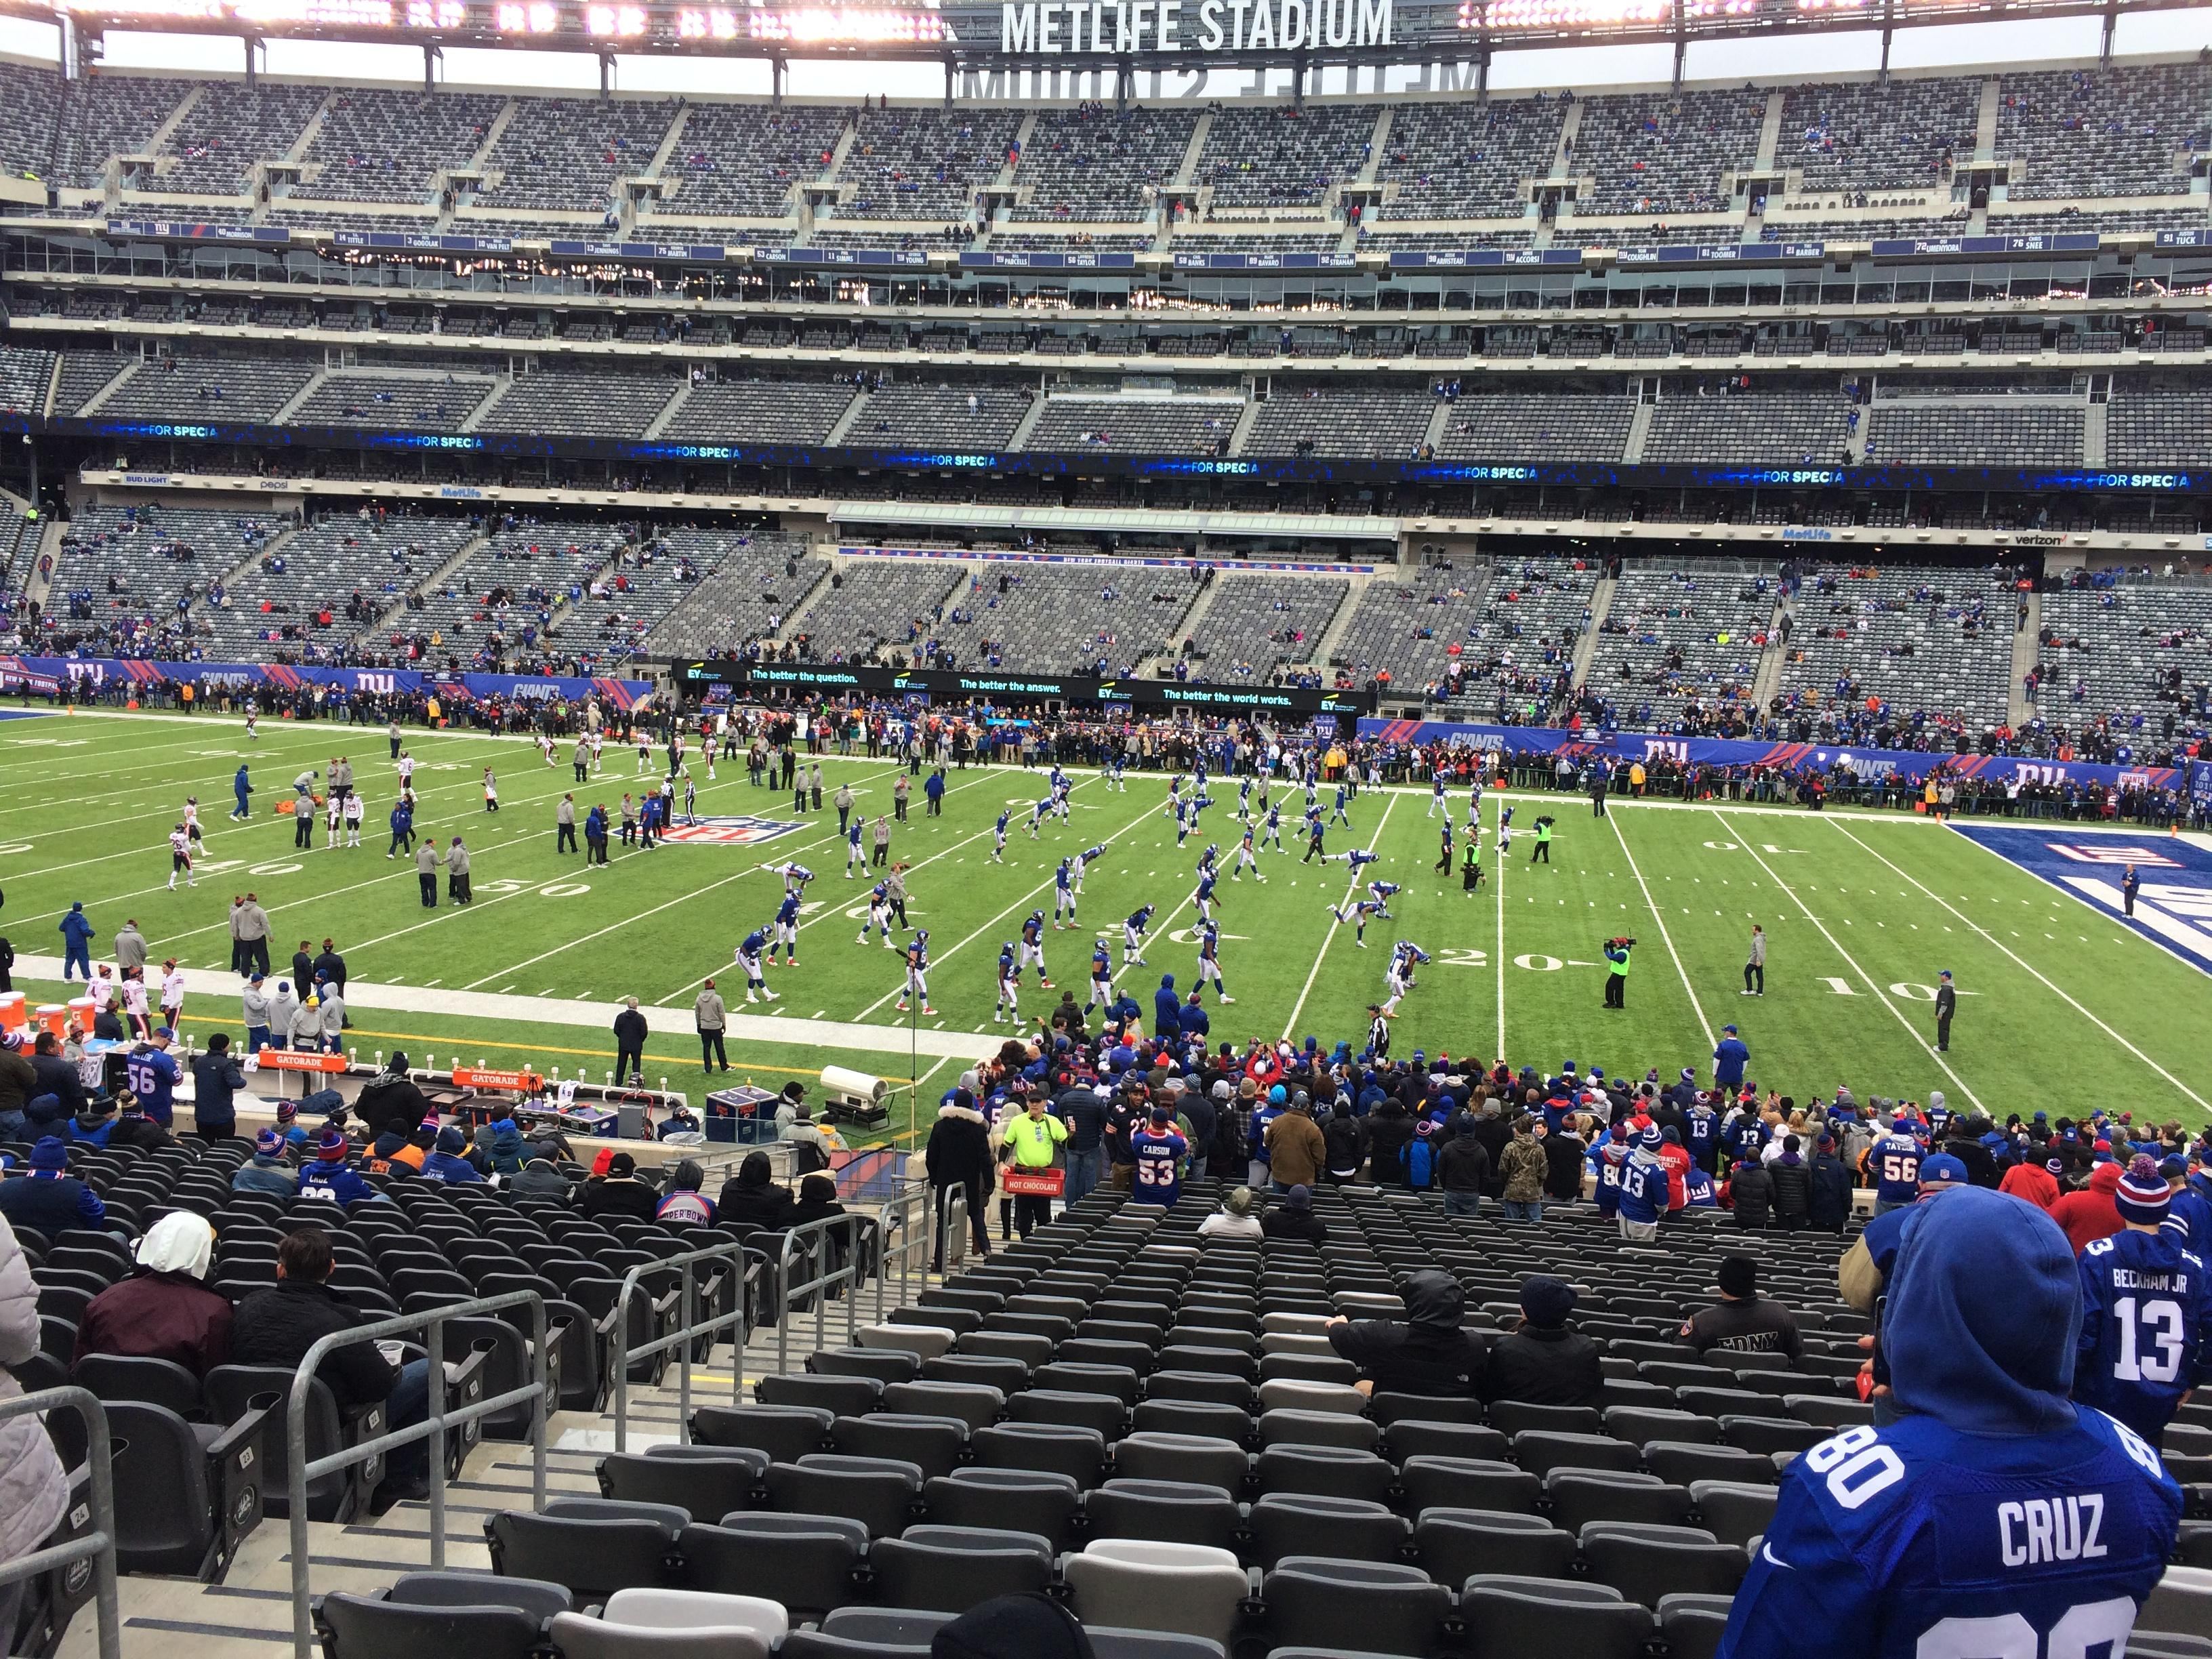 MetLife Stadium Section 135 Row 30 Seat 29